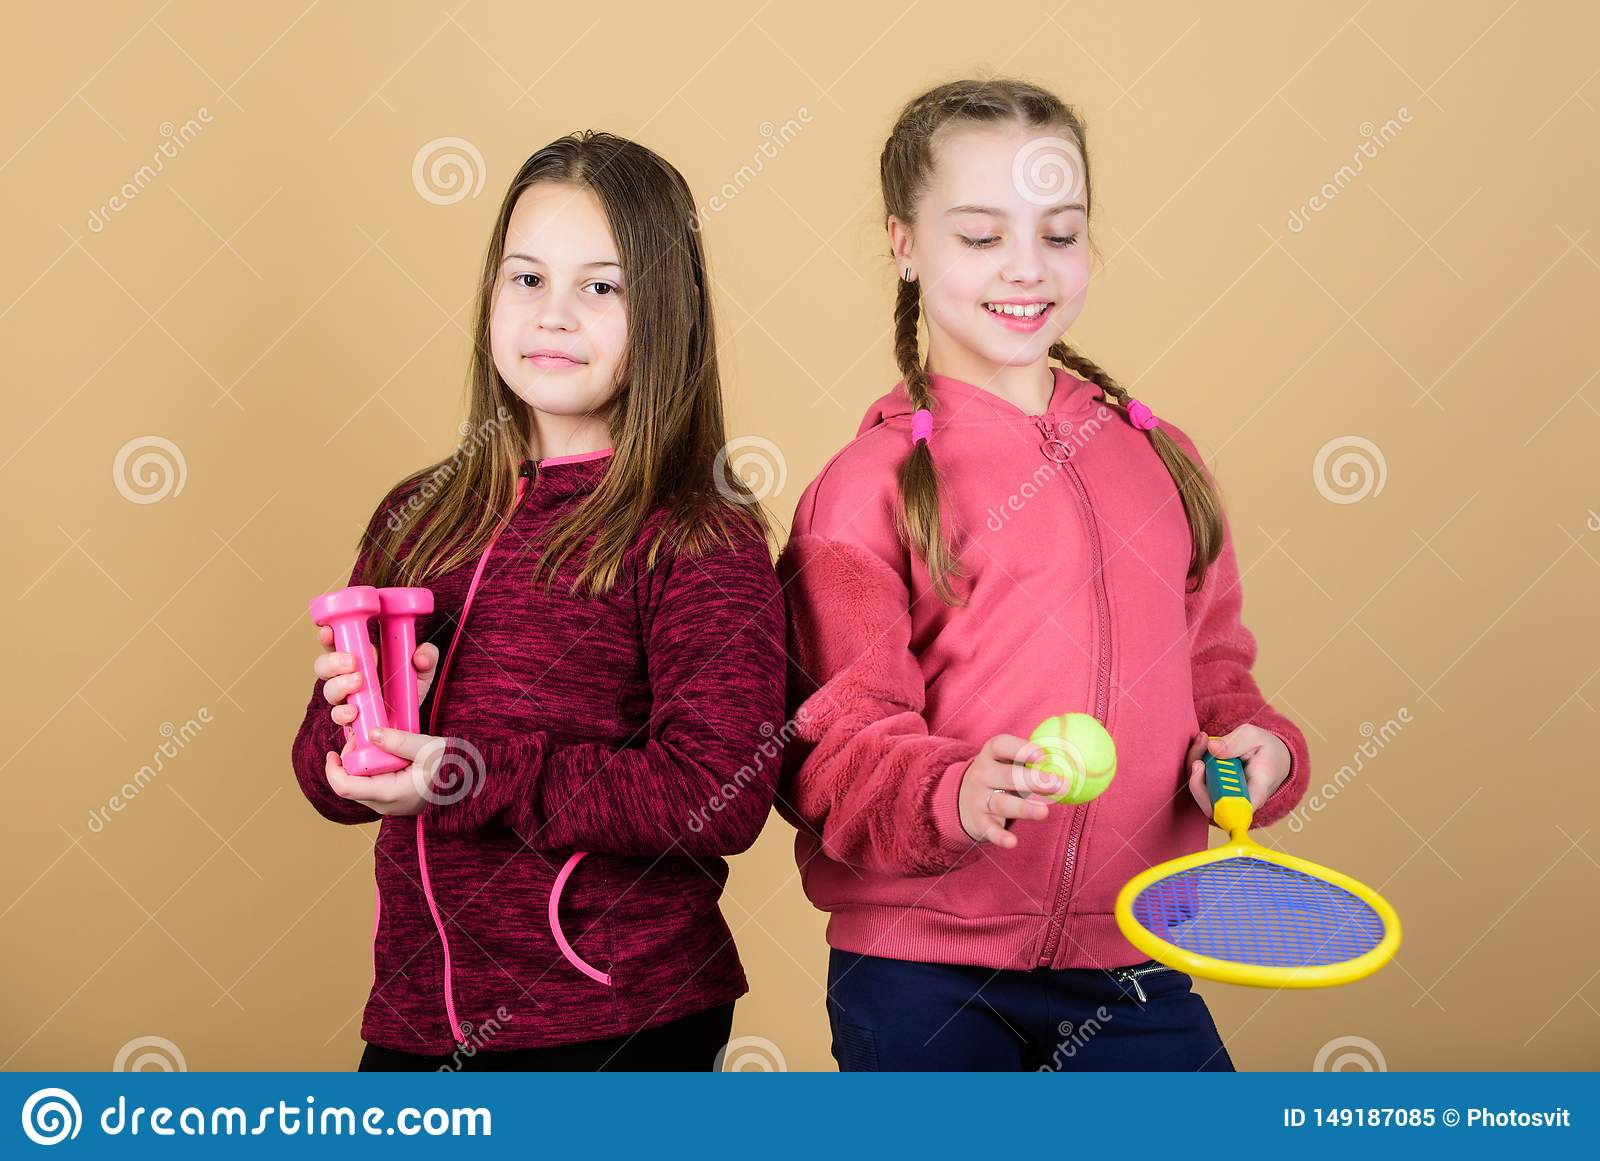 We love sport. Child might excel in completely different sport. Friends ready for training. Ways to help kids find sport